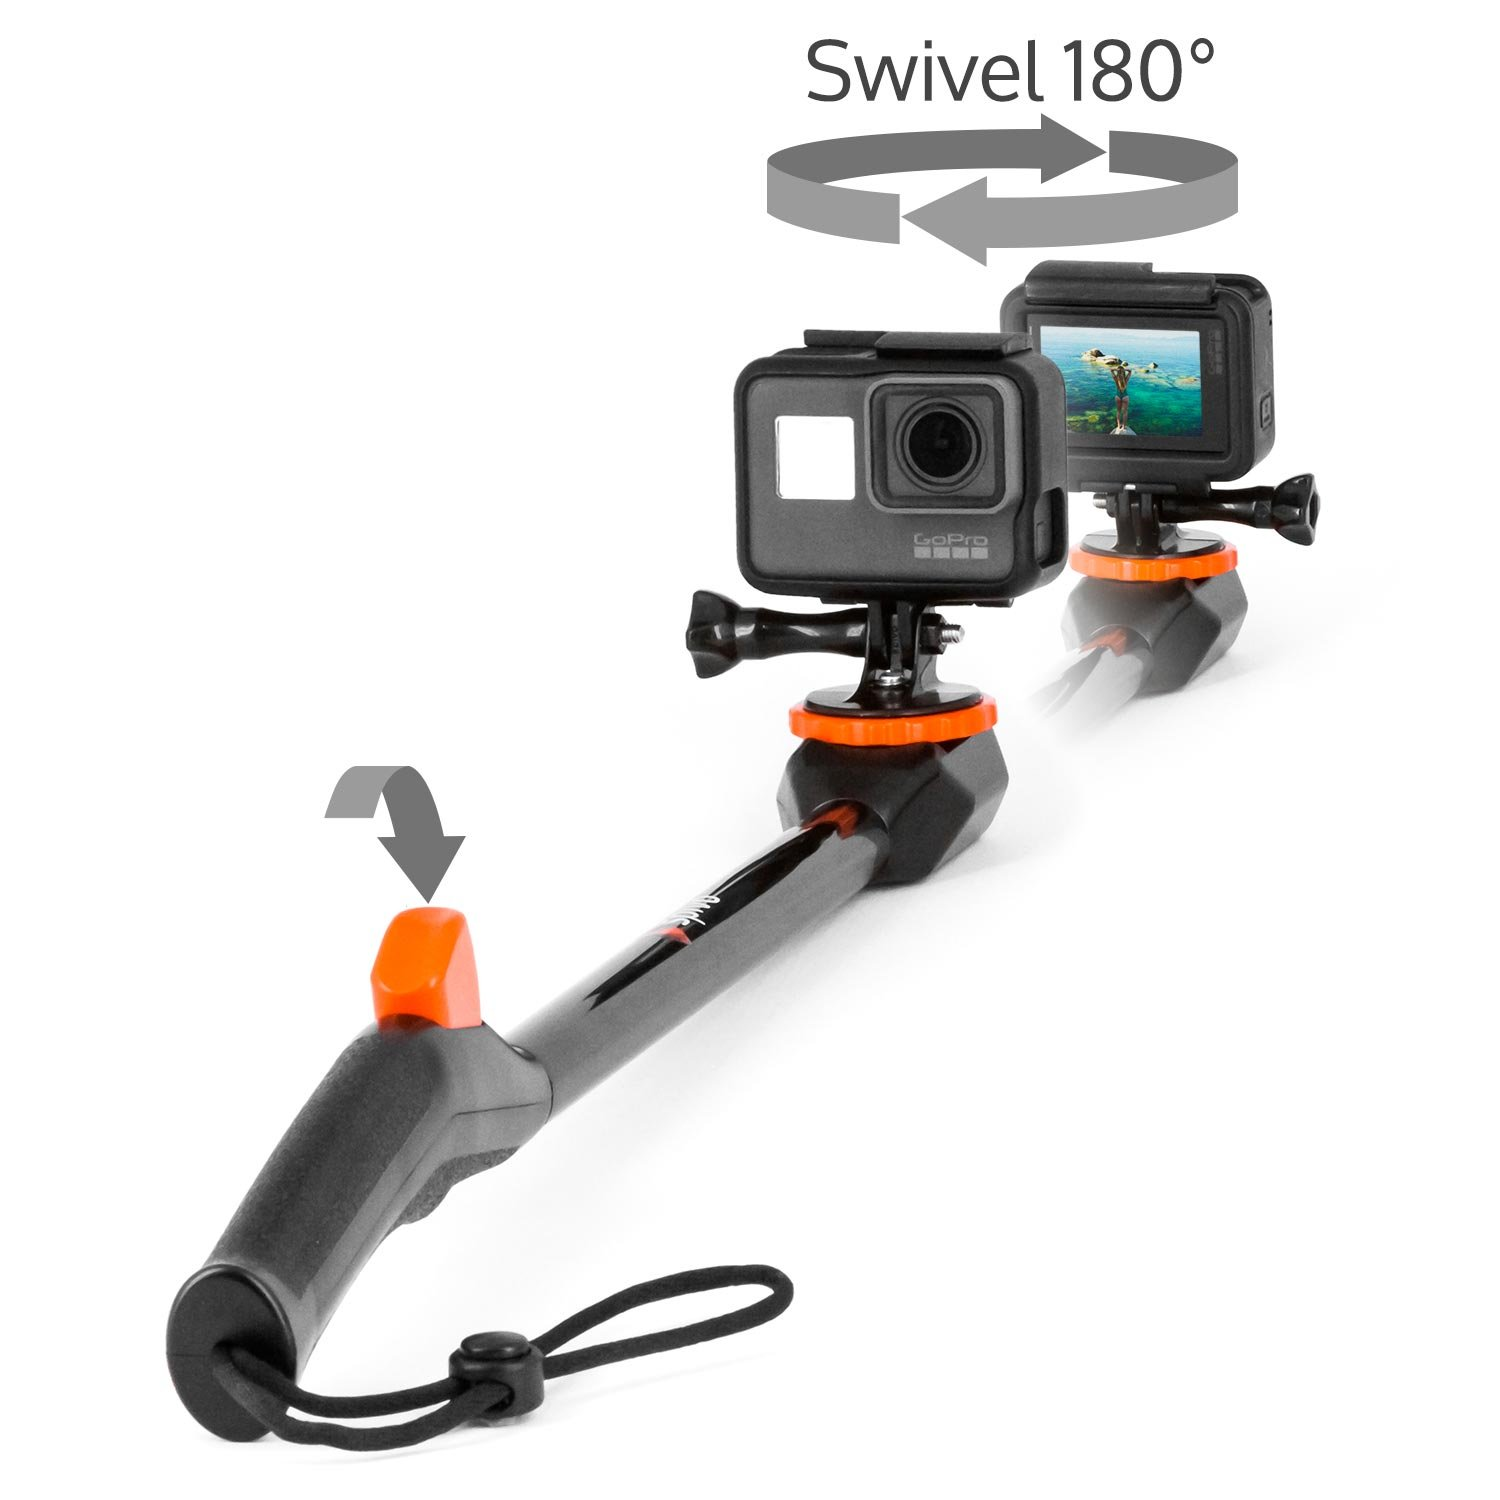 Spivo 360, New 20 Inch Waterproof Swivel Selfie Stick for GoPro Cameras and Smartphones. The Only Rotating Pole to Capture Your Adventures From Every Angle (Waterproof, 2nd Generation, Black) 6971770000000